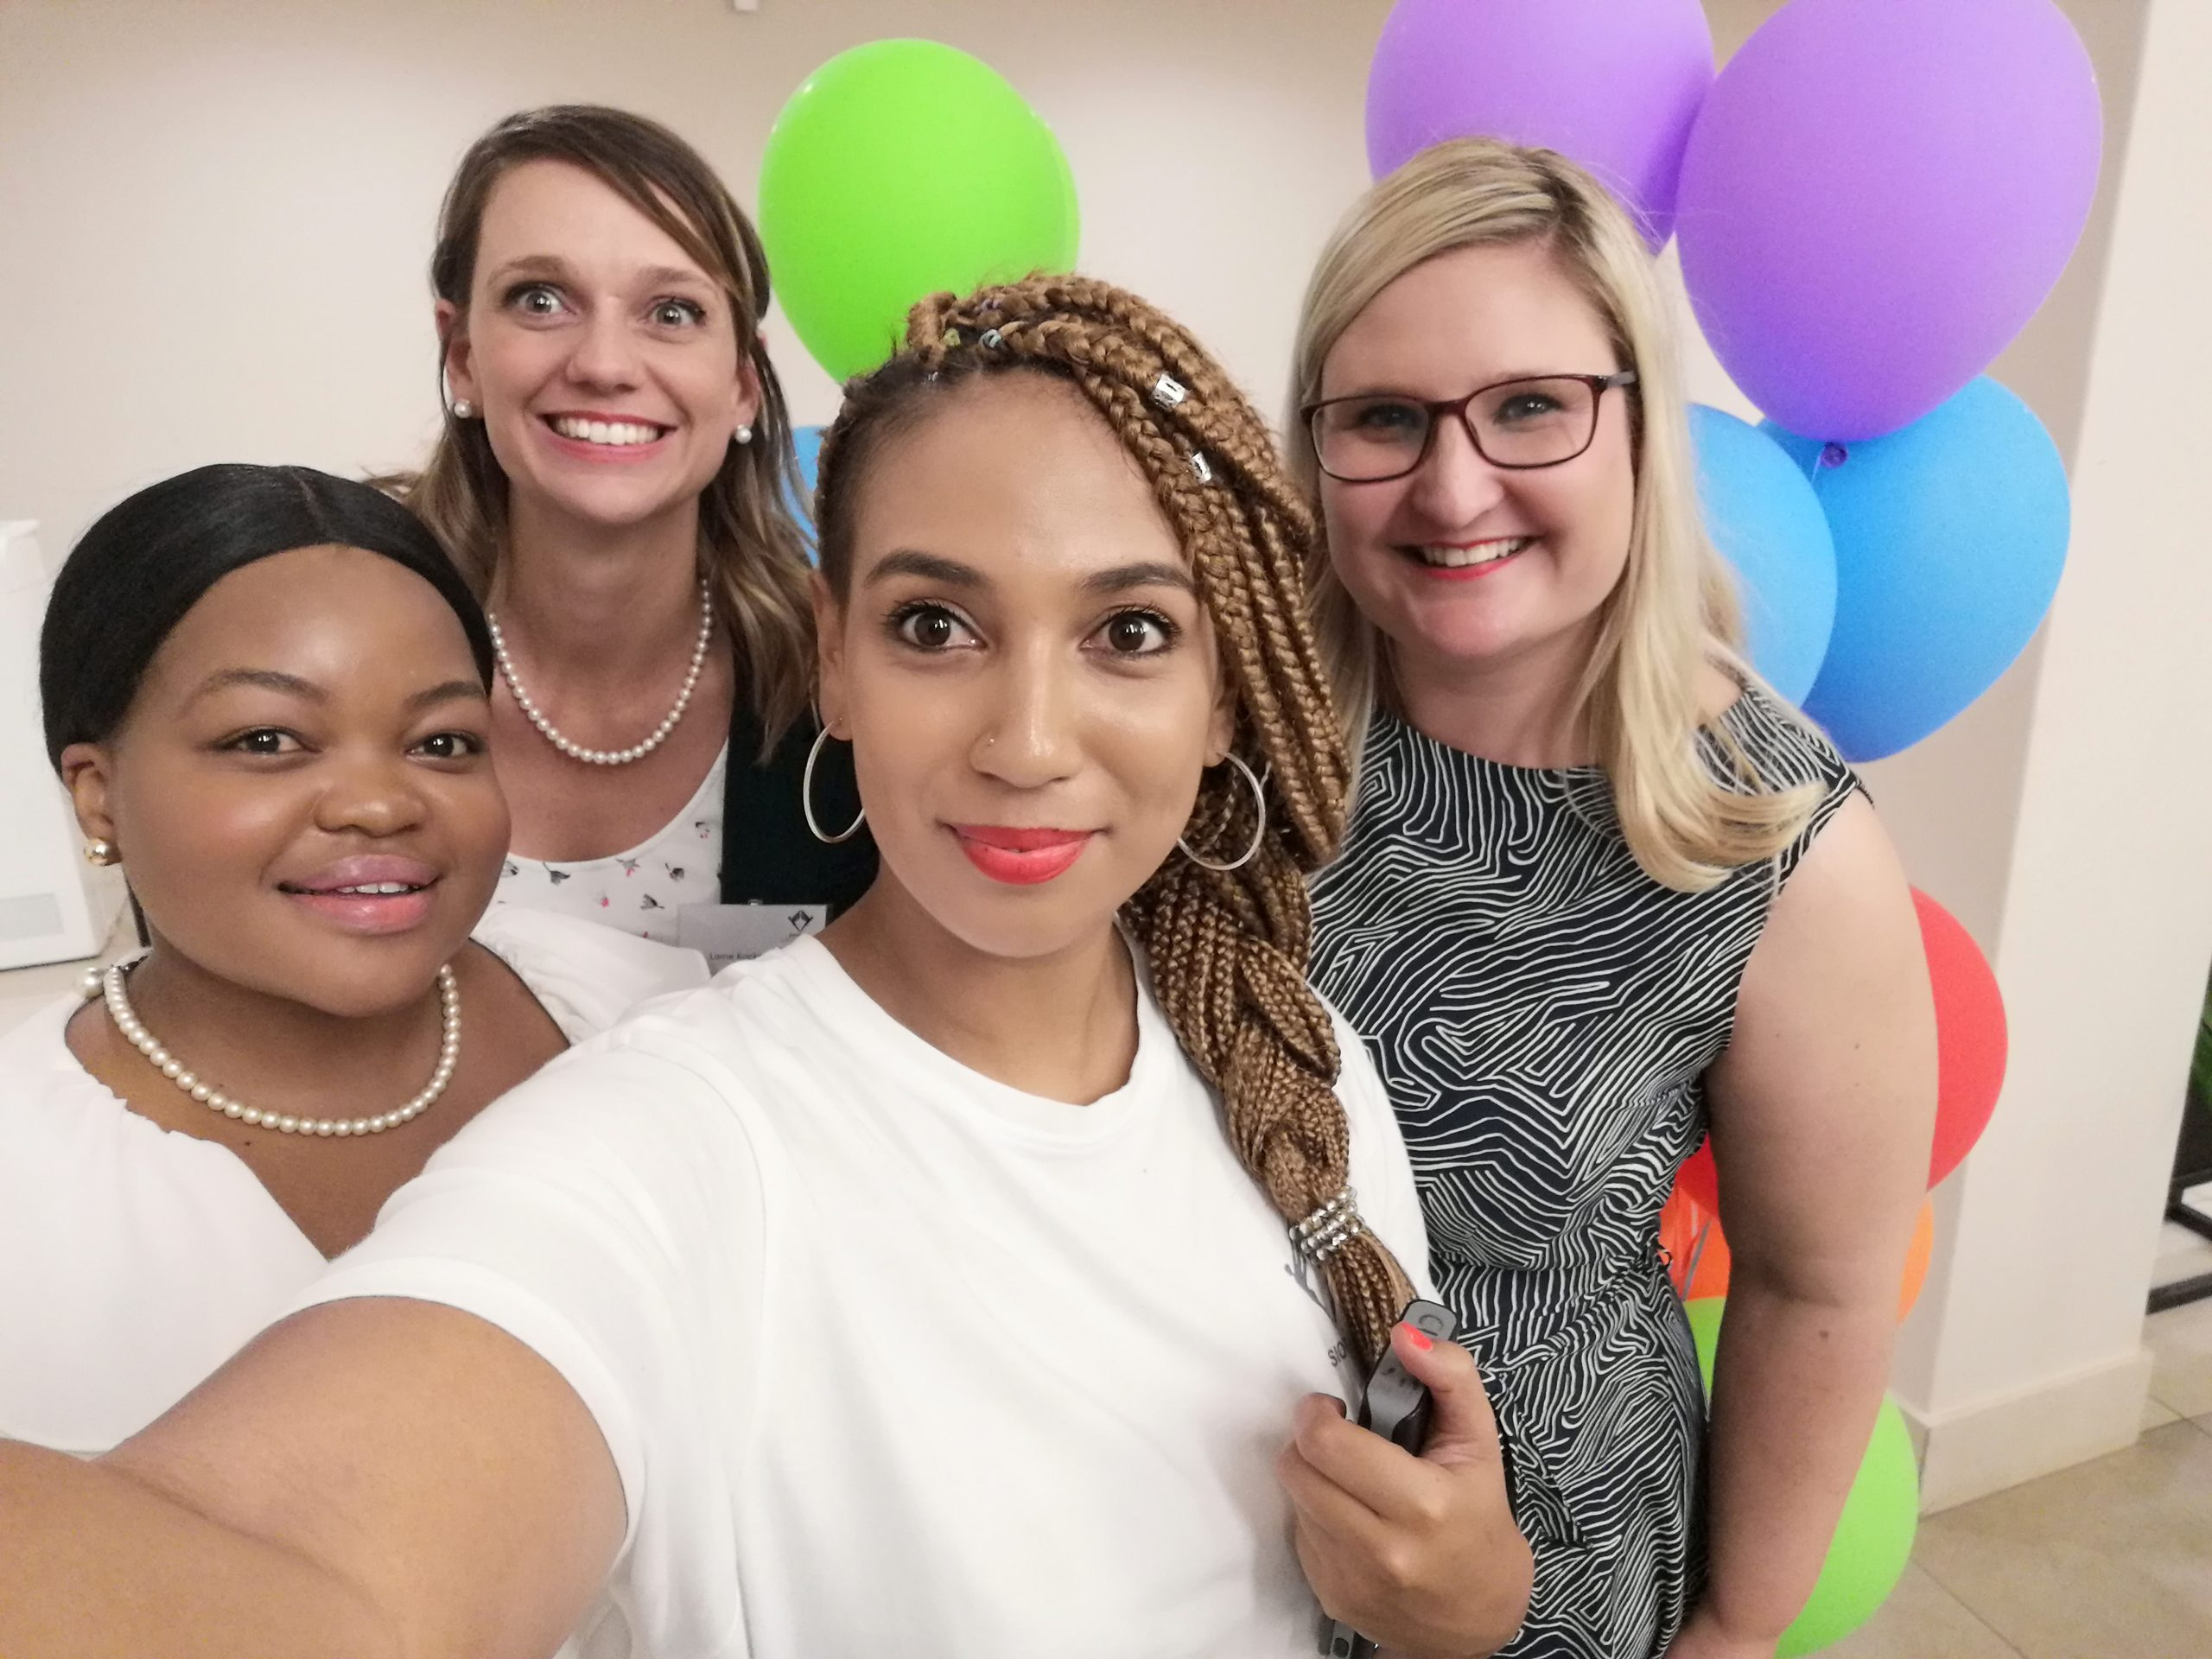 SIOPSA team with colourful balloons